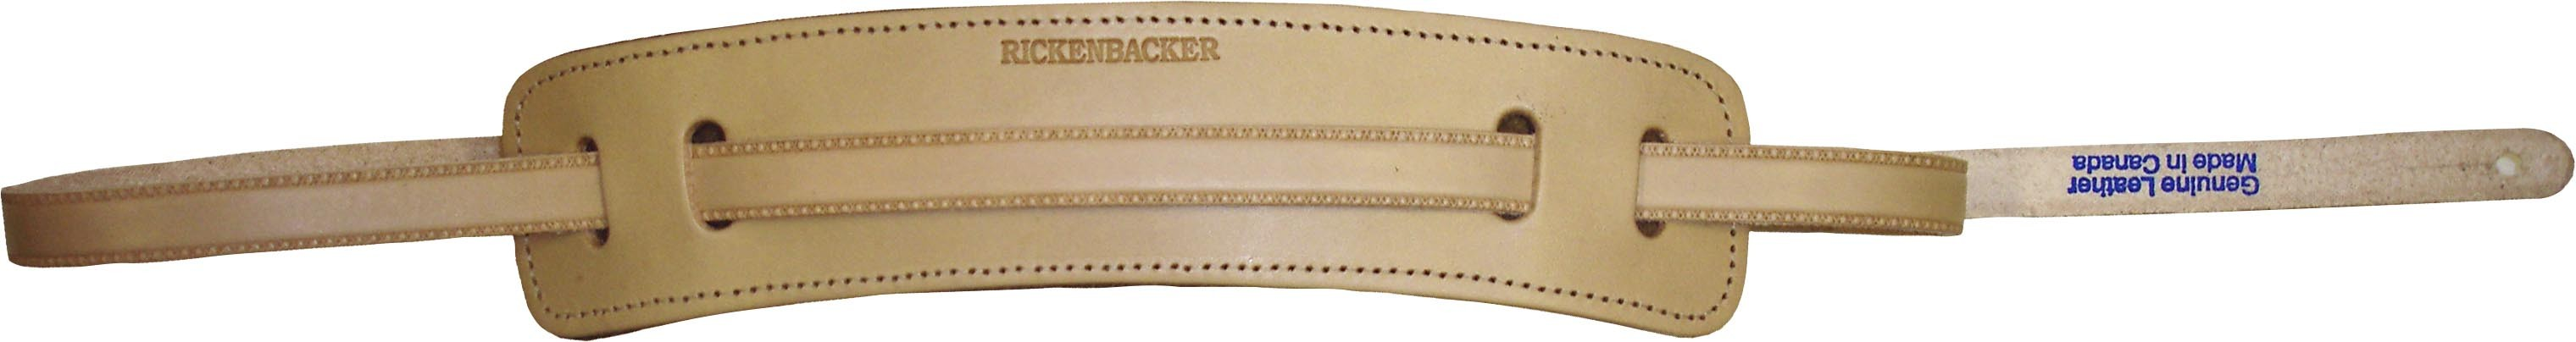 Rickenbacker Natural Leather Guitar Strap